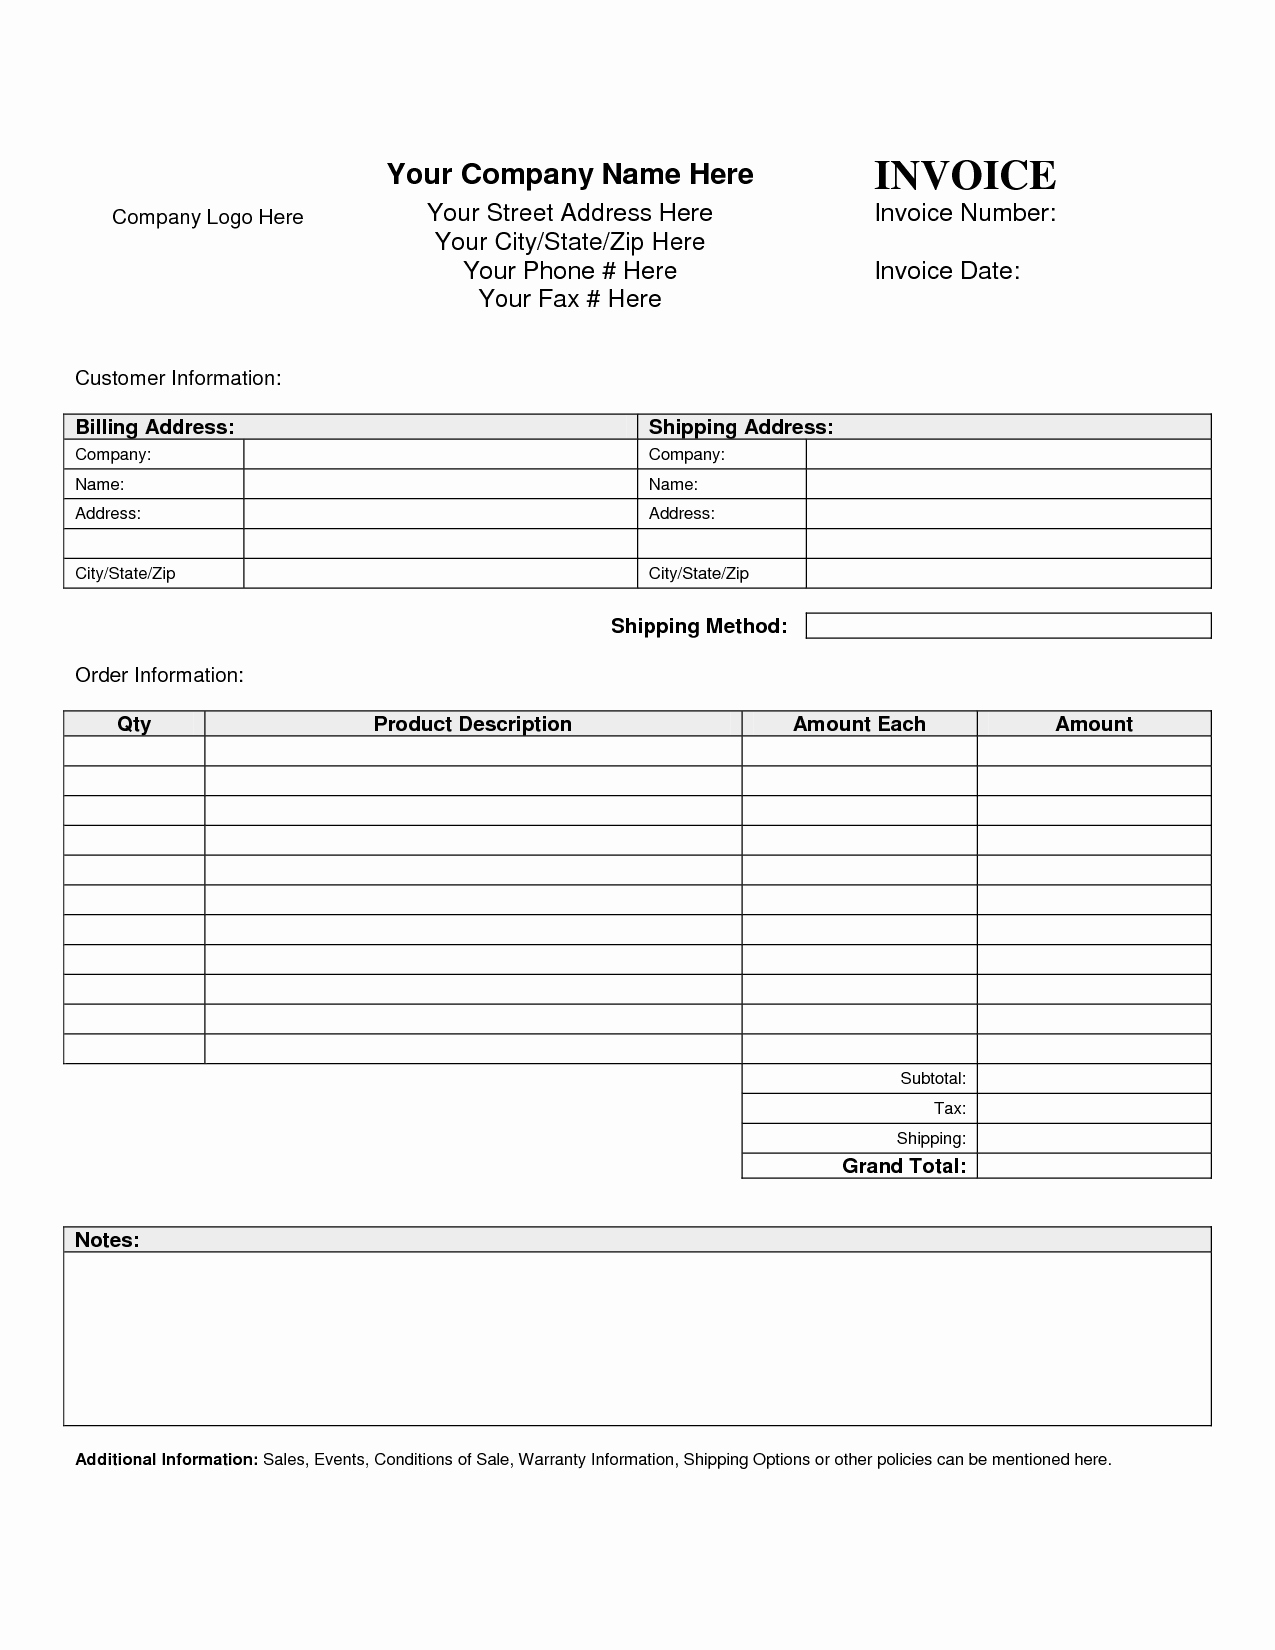 Free Templates for Invoices Printable New Billing Invoice Template Free